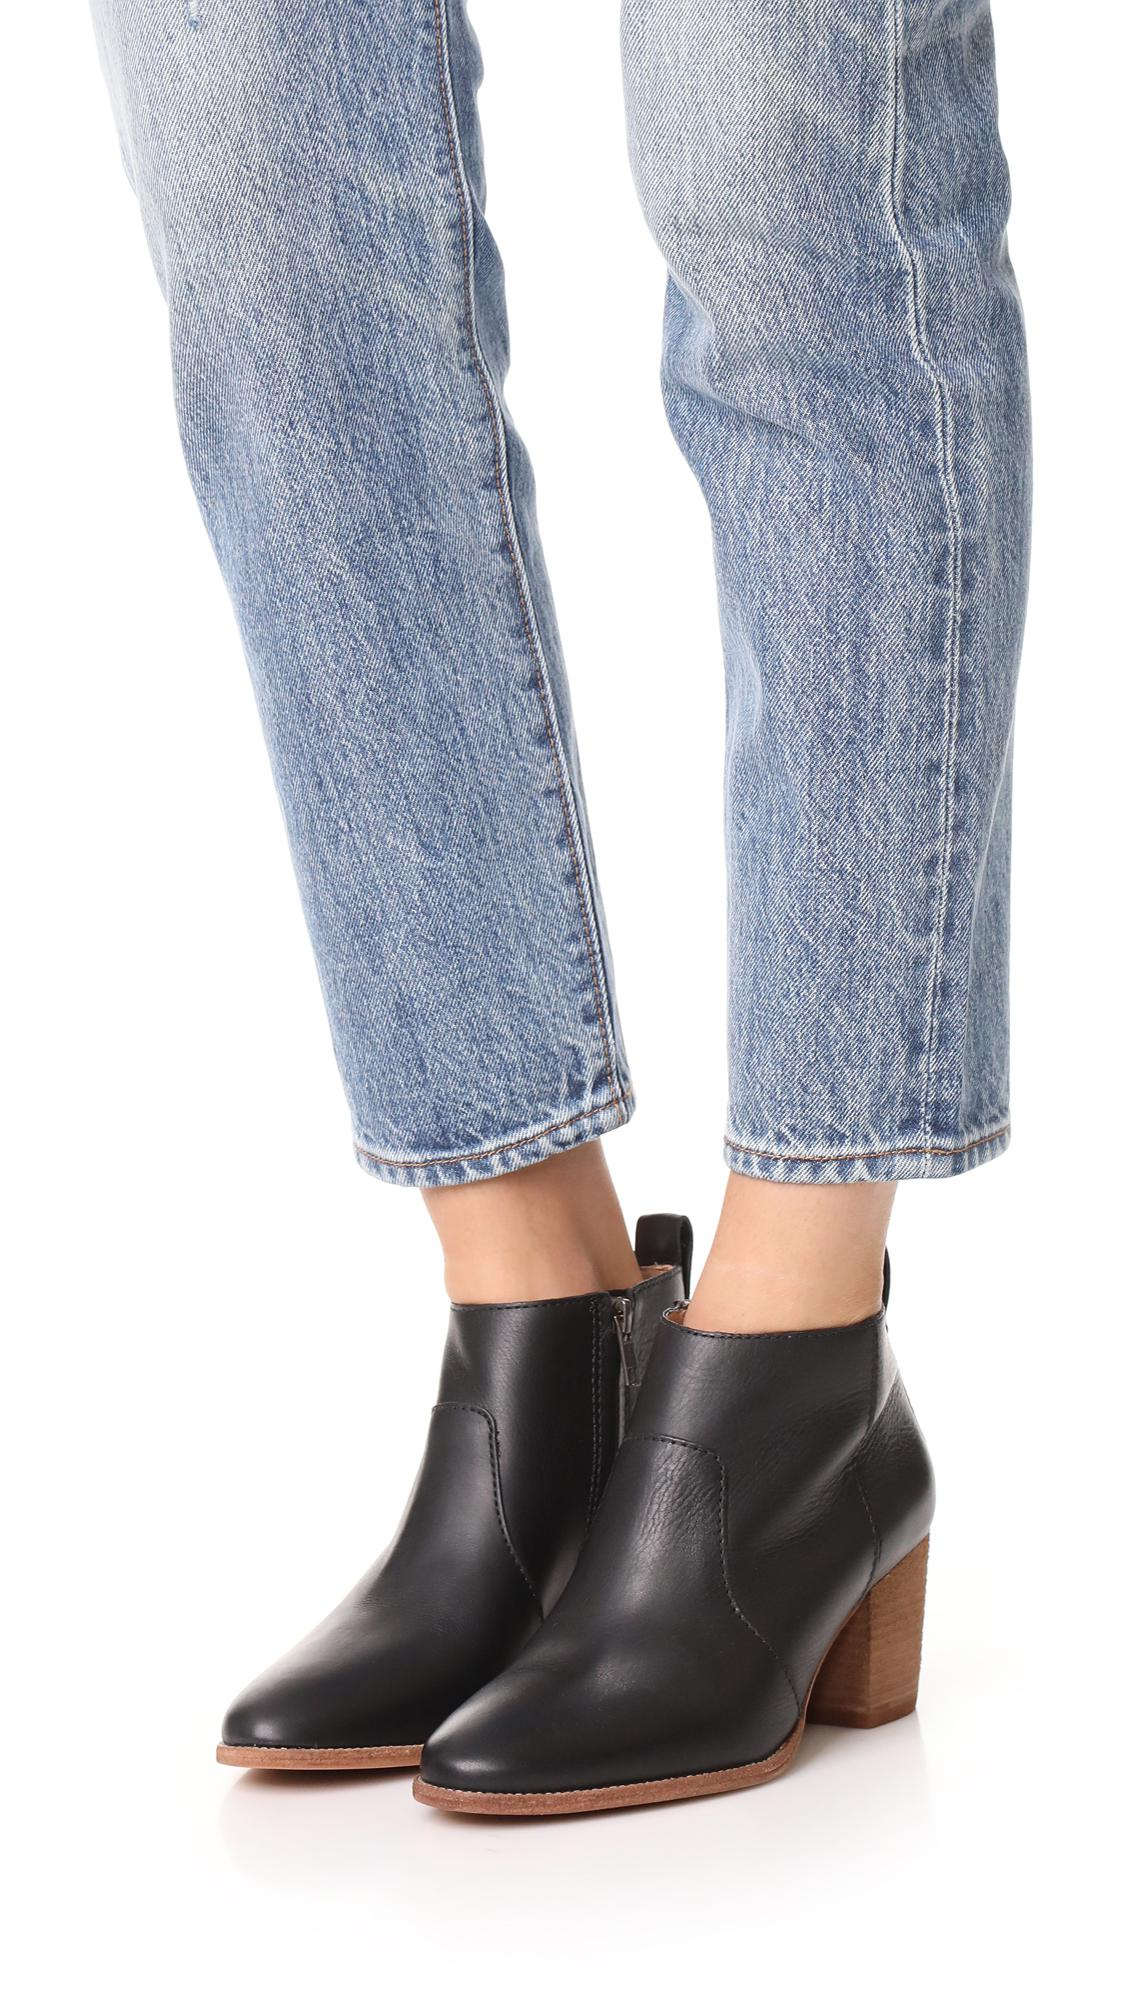 74c77a822 Madewell Brenner Boots in Black - Lyst